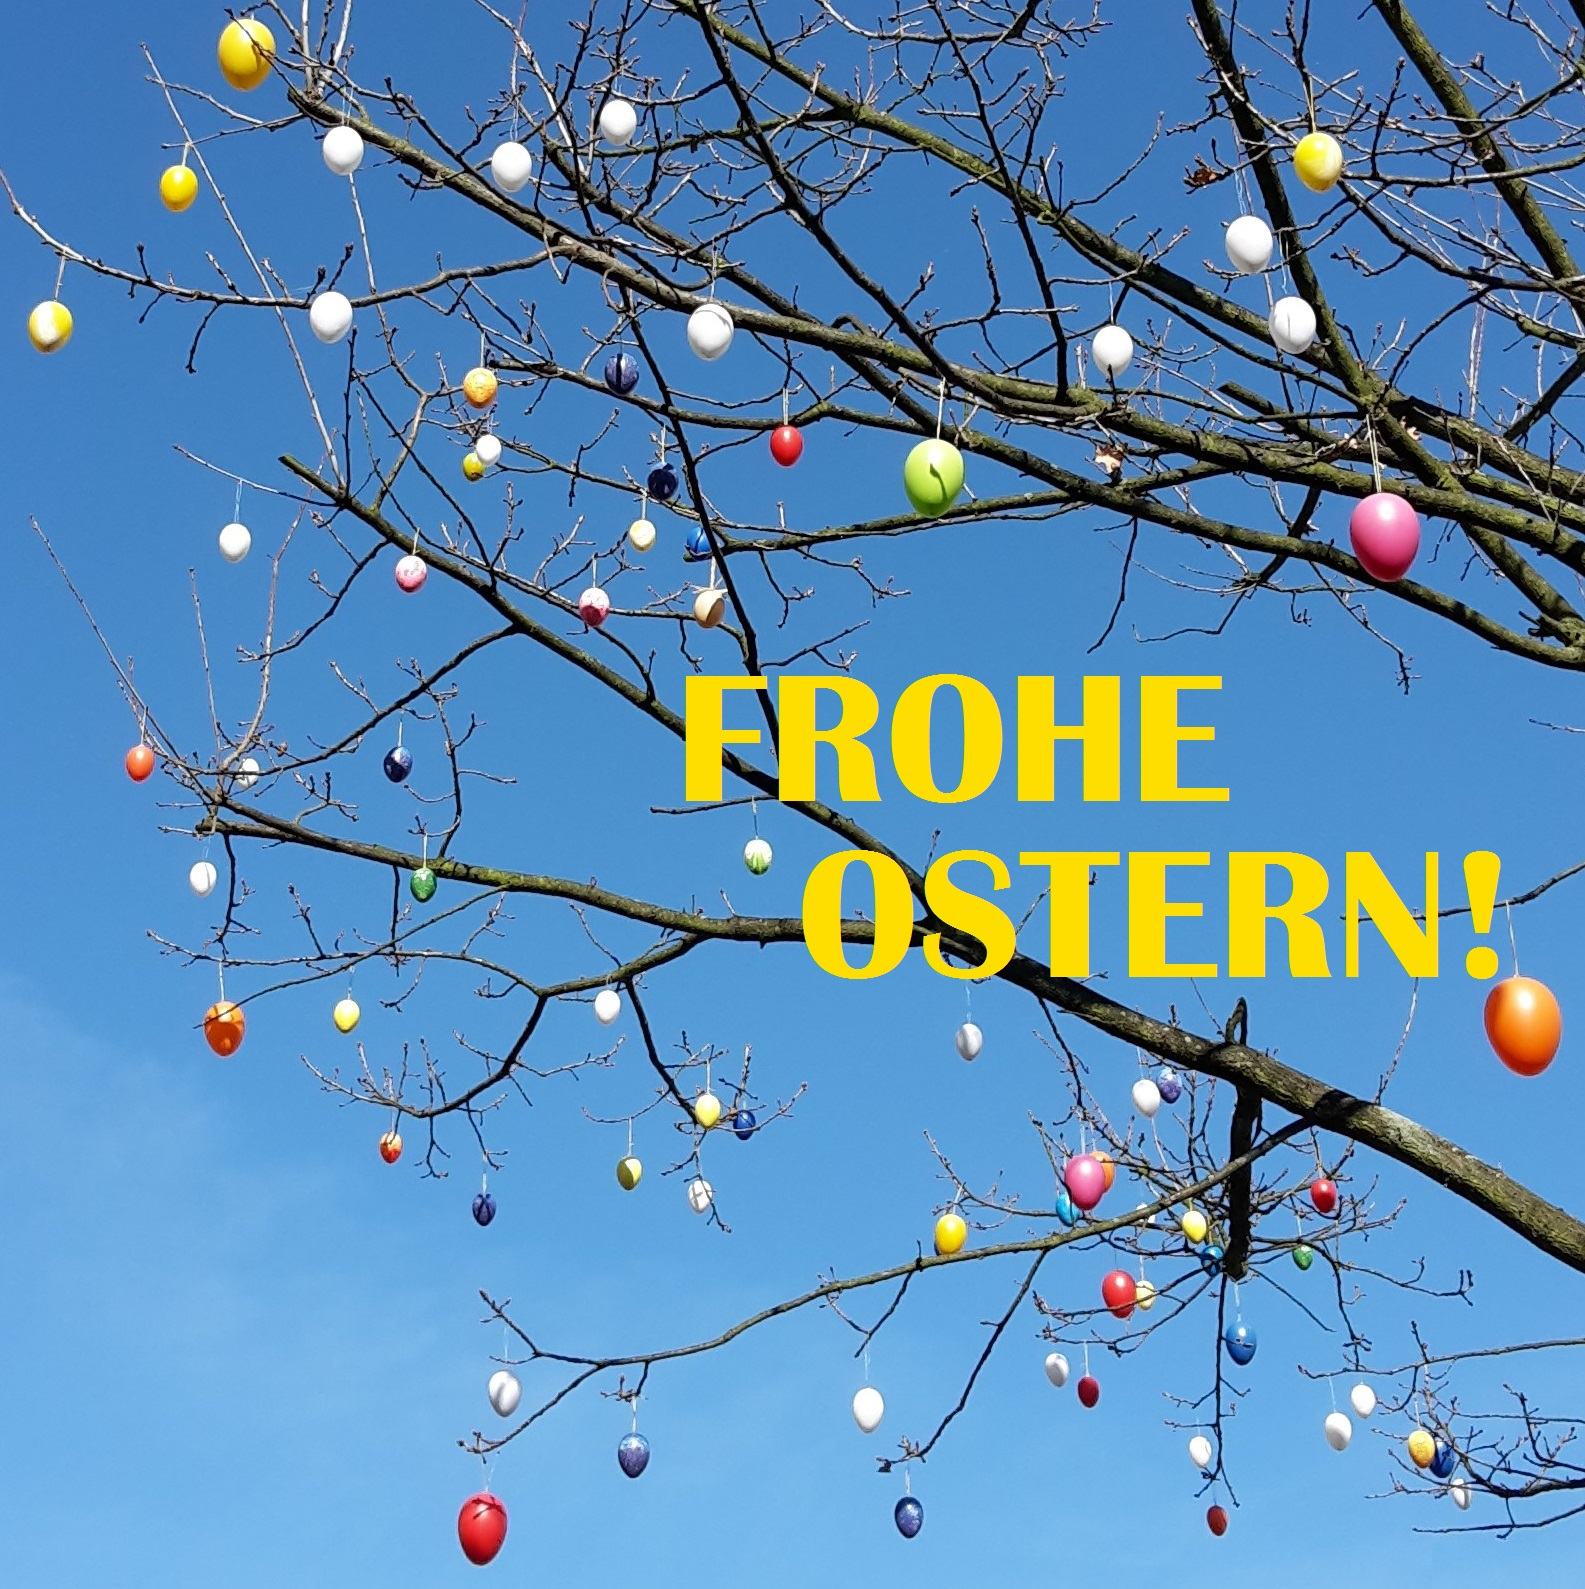 Frohe Ostern LV 2017